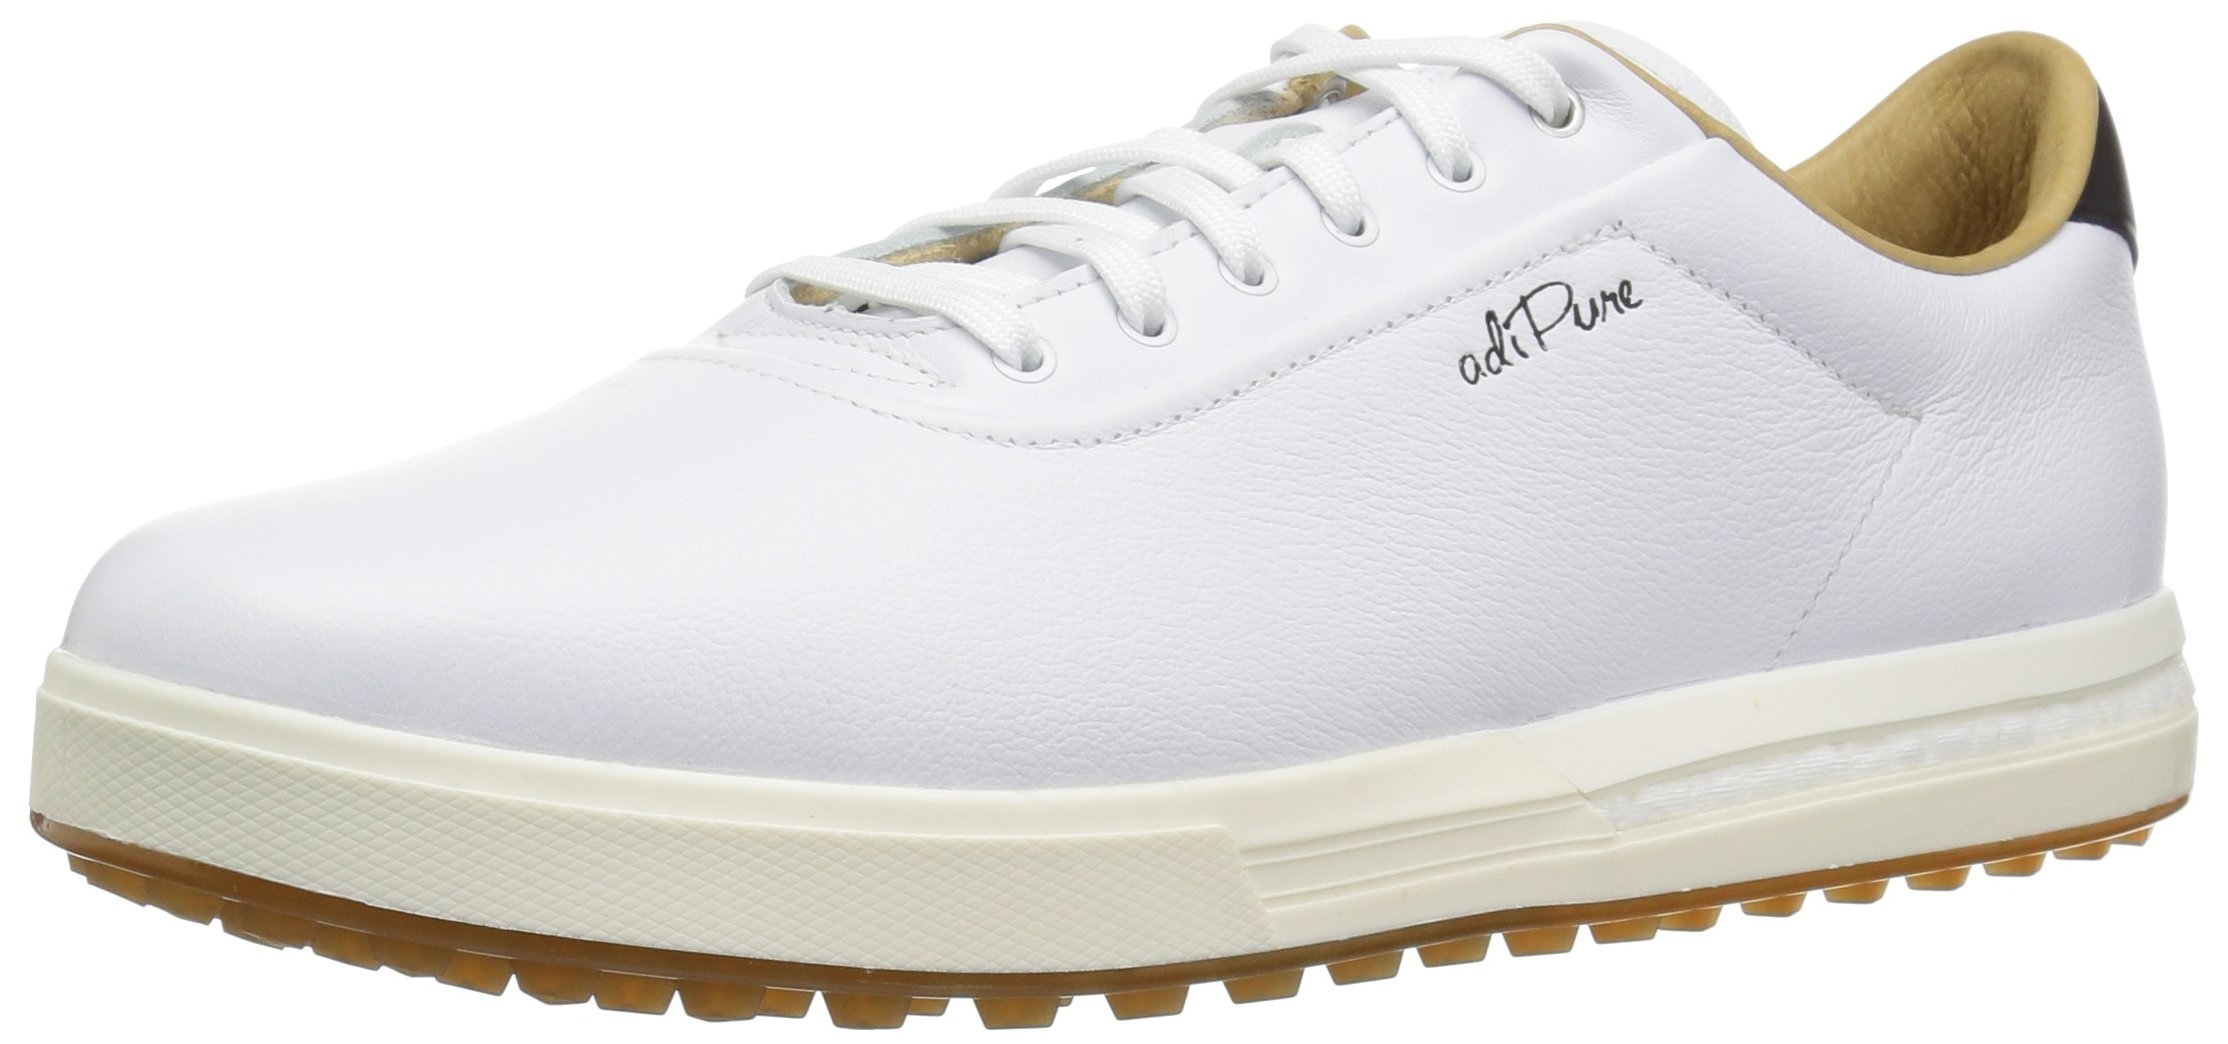 adidas Men's Adipure sp Golf Shoe, FTWR White/Grey Two, 9 Medium US by adidas